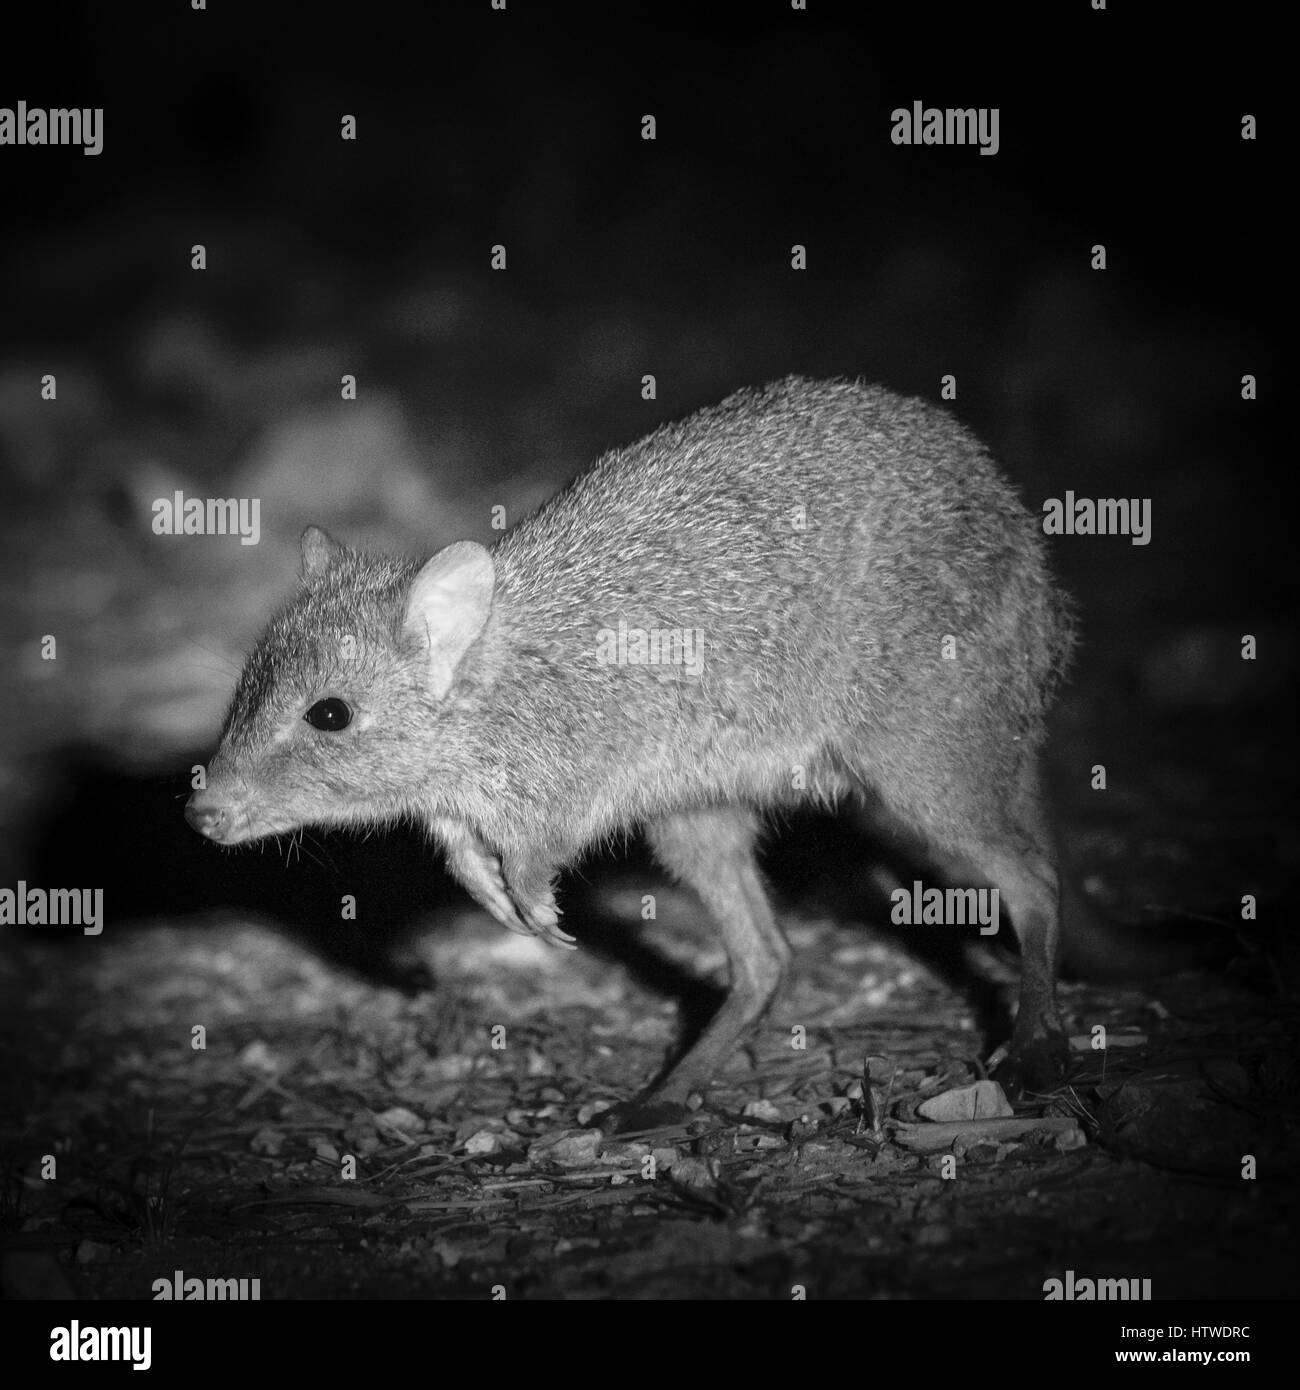 Brush-tailed Bettong (Bettongia penicillata) - Stock Image